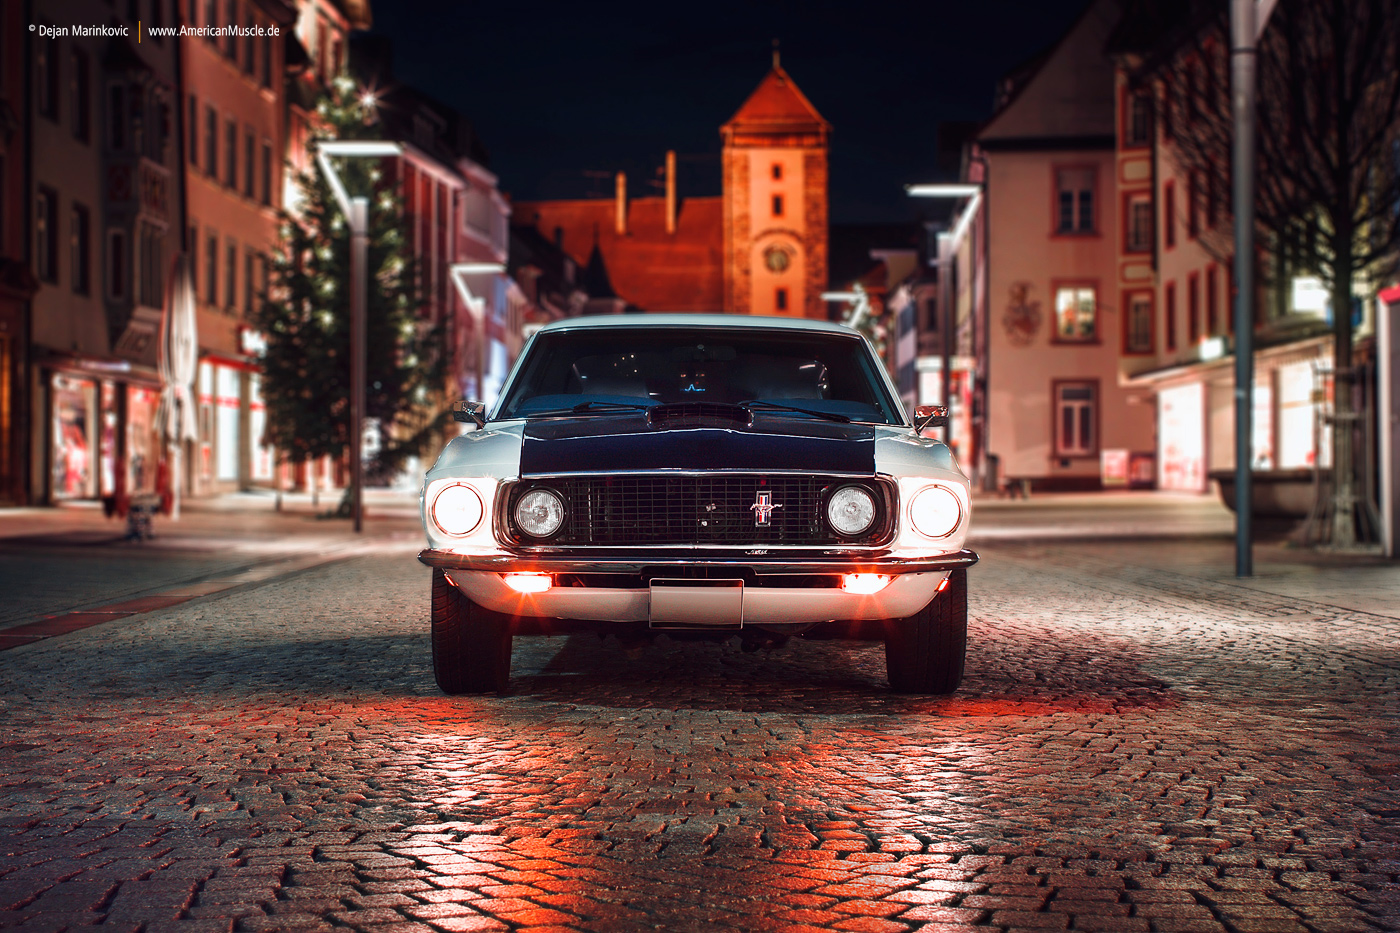 69 Mustang in old town